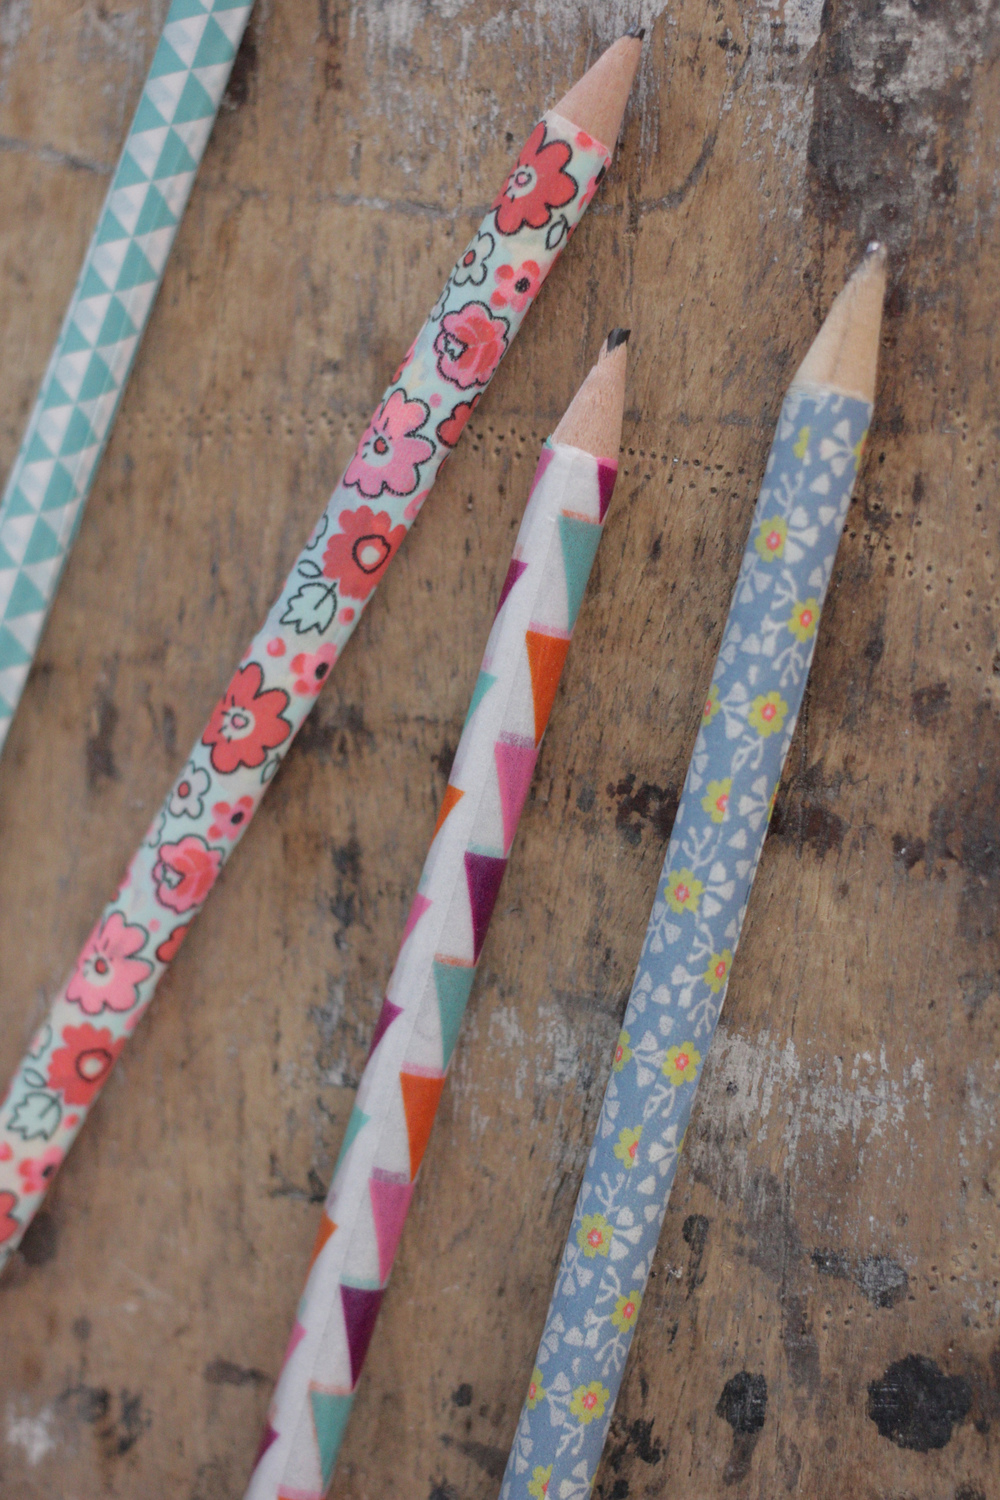 washi tape pencil tutorial by Hester's Handmade Home